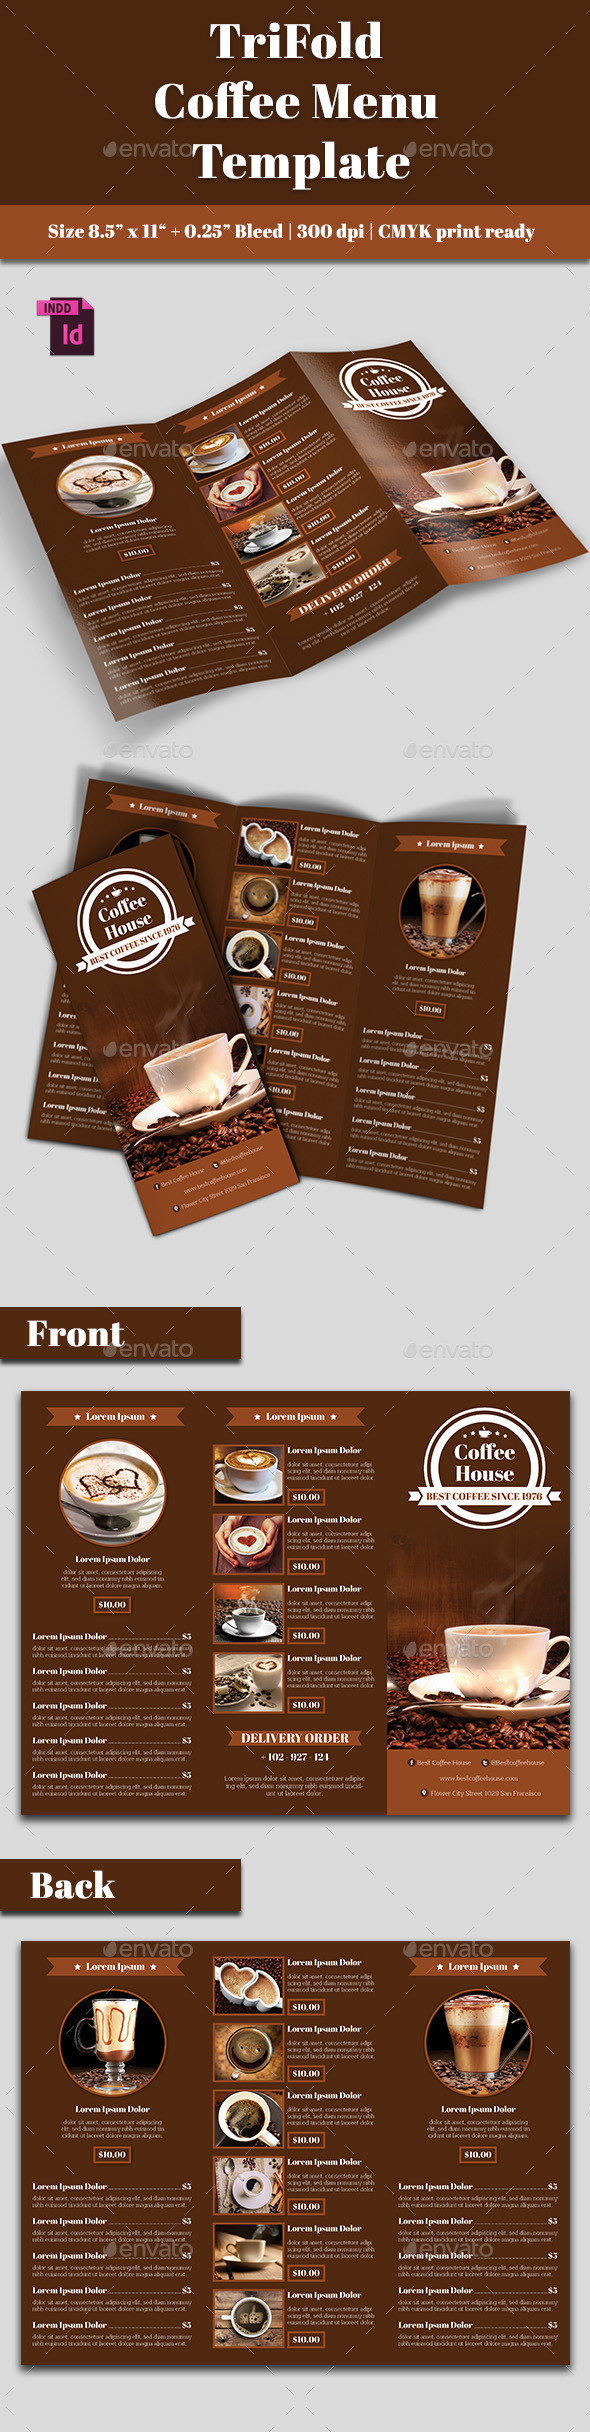 GraphicRiver TriFold Coffee Menu 10794145